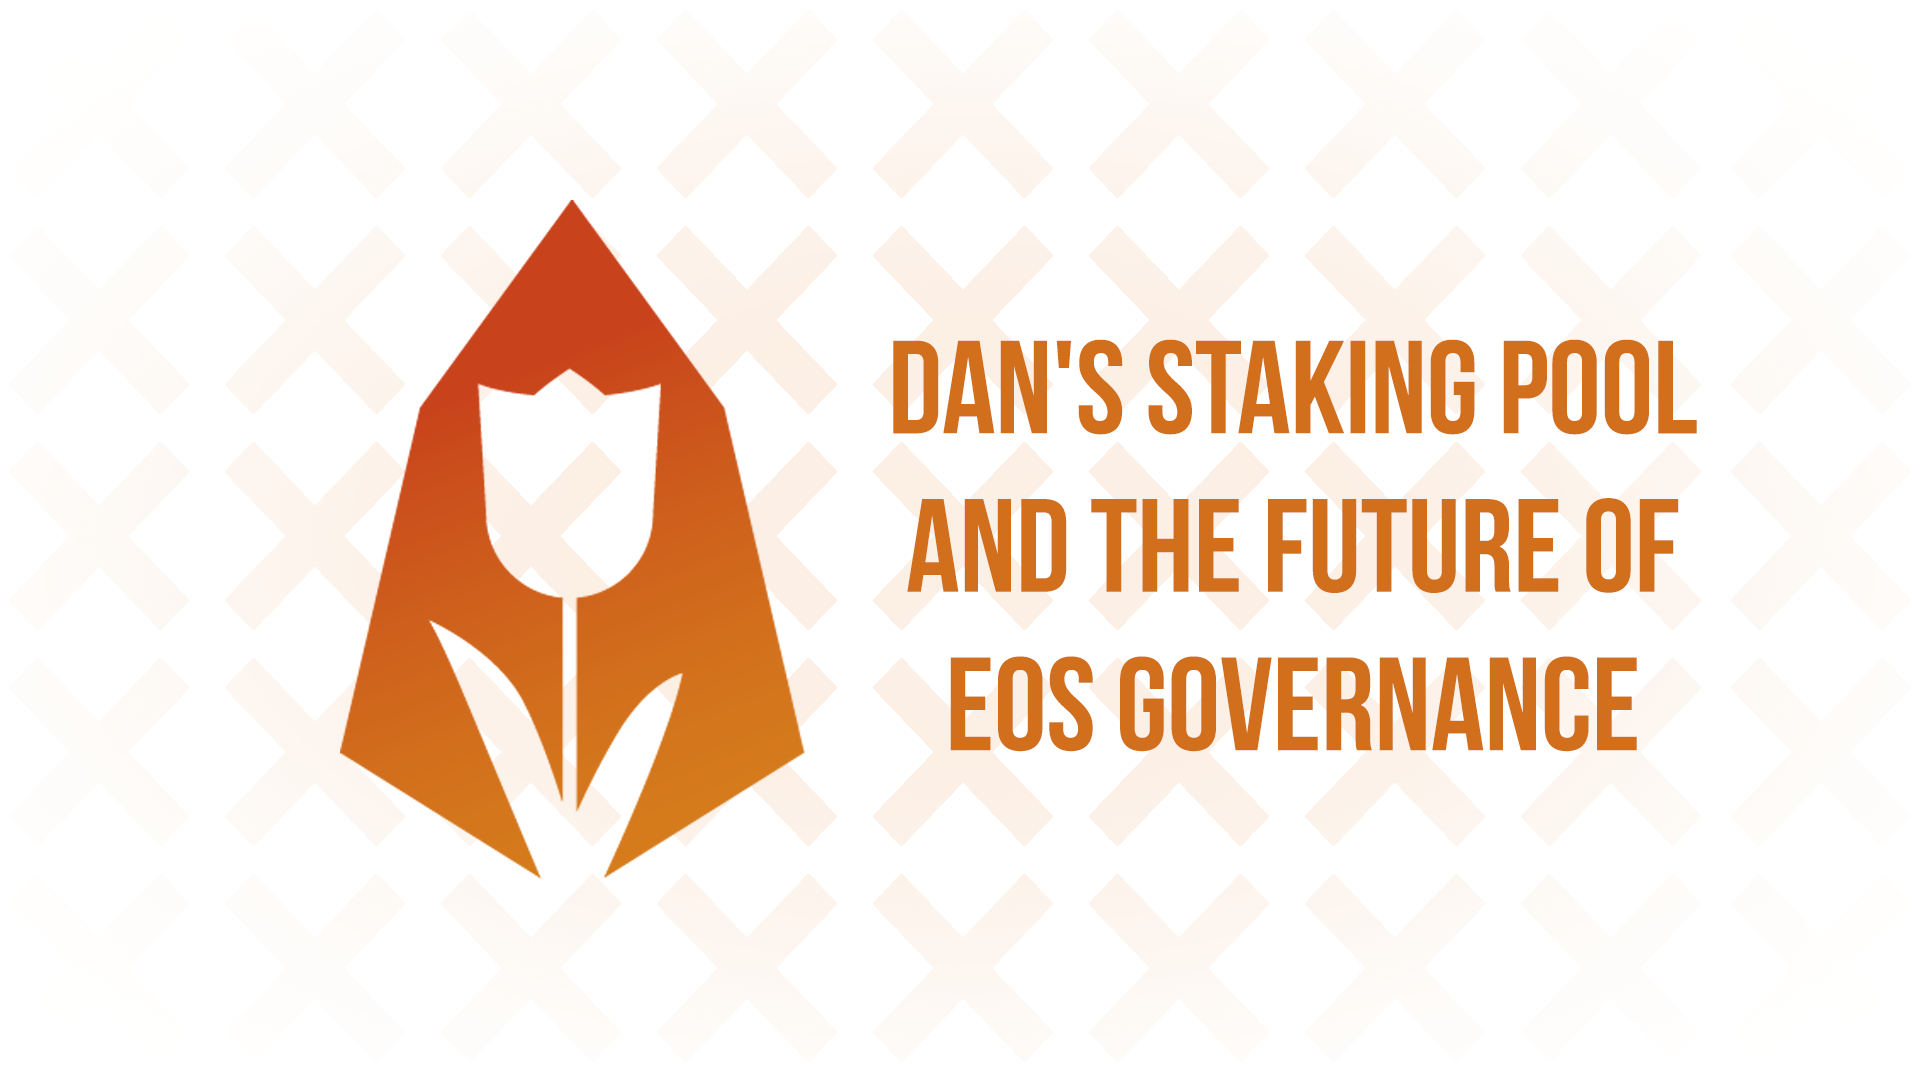 eos-amsterdam-explains-dans-staking-pools